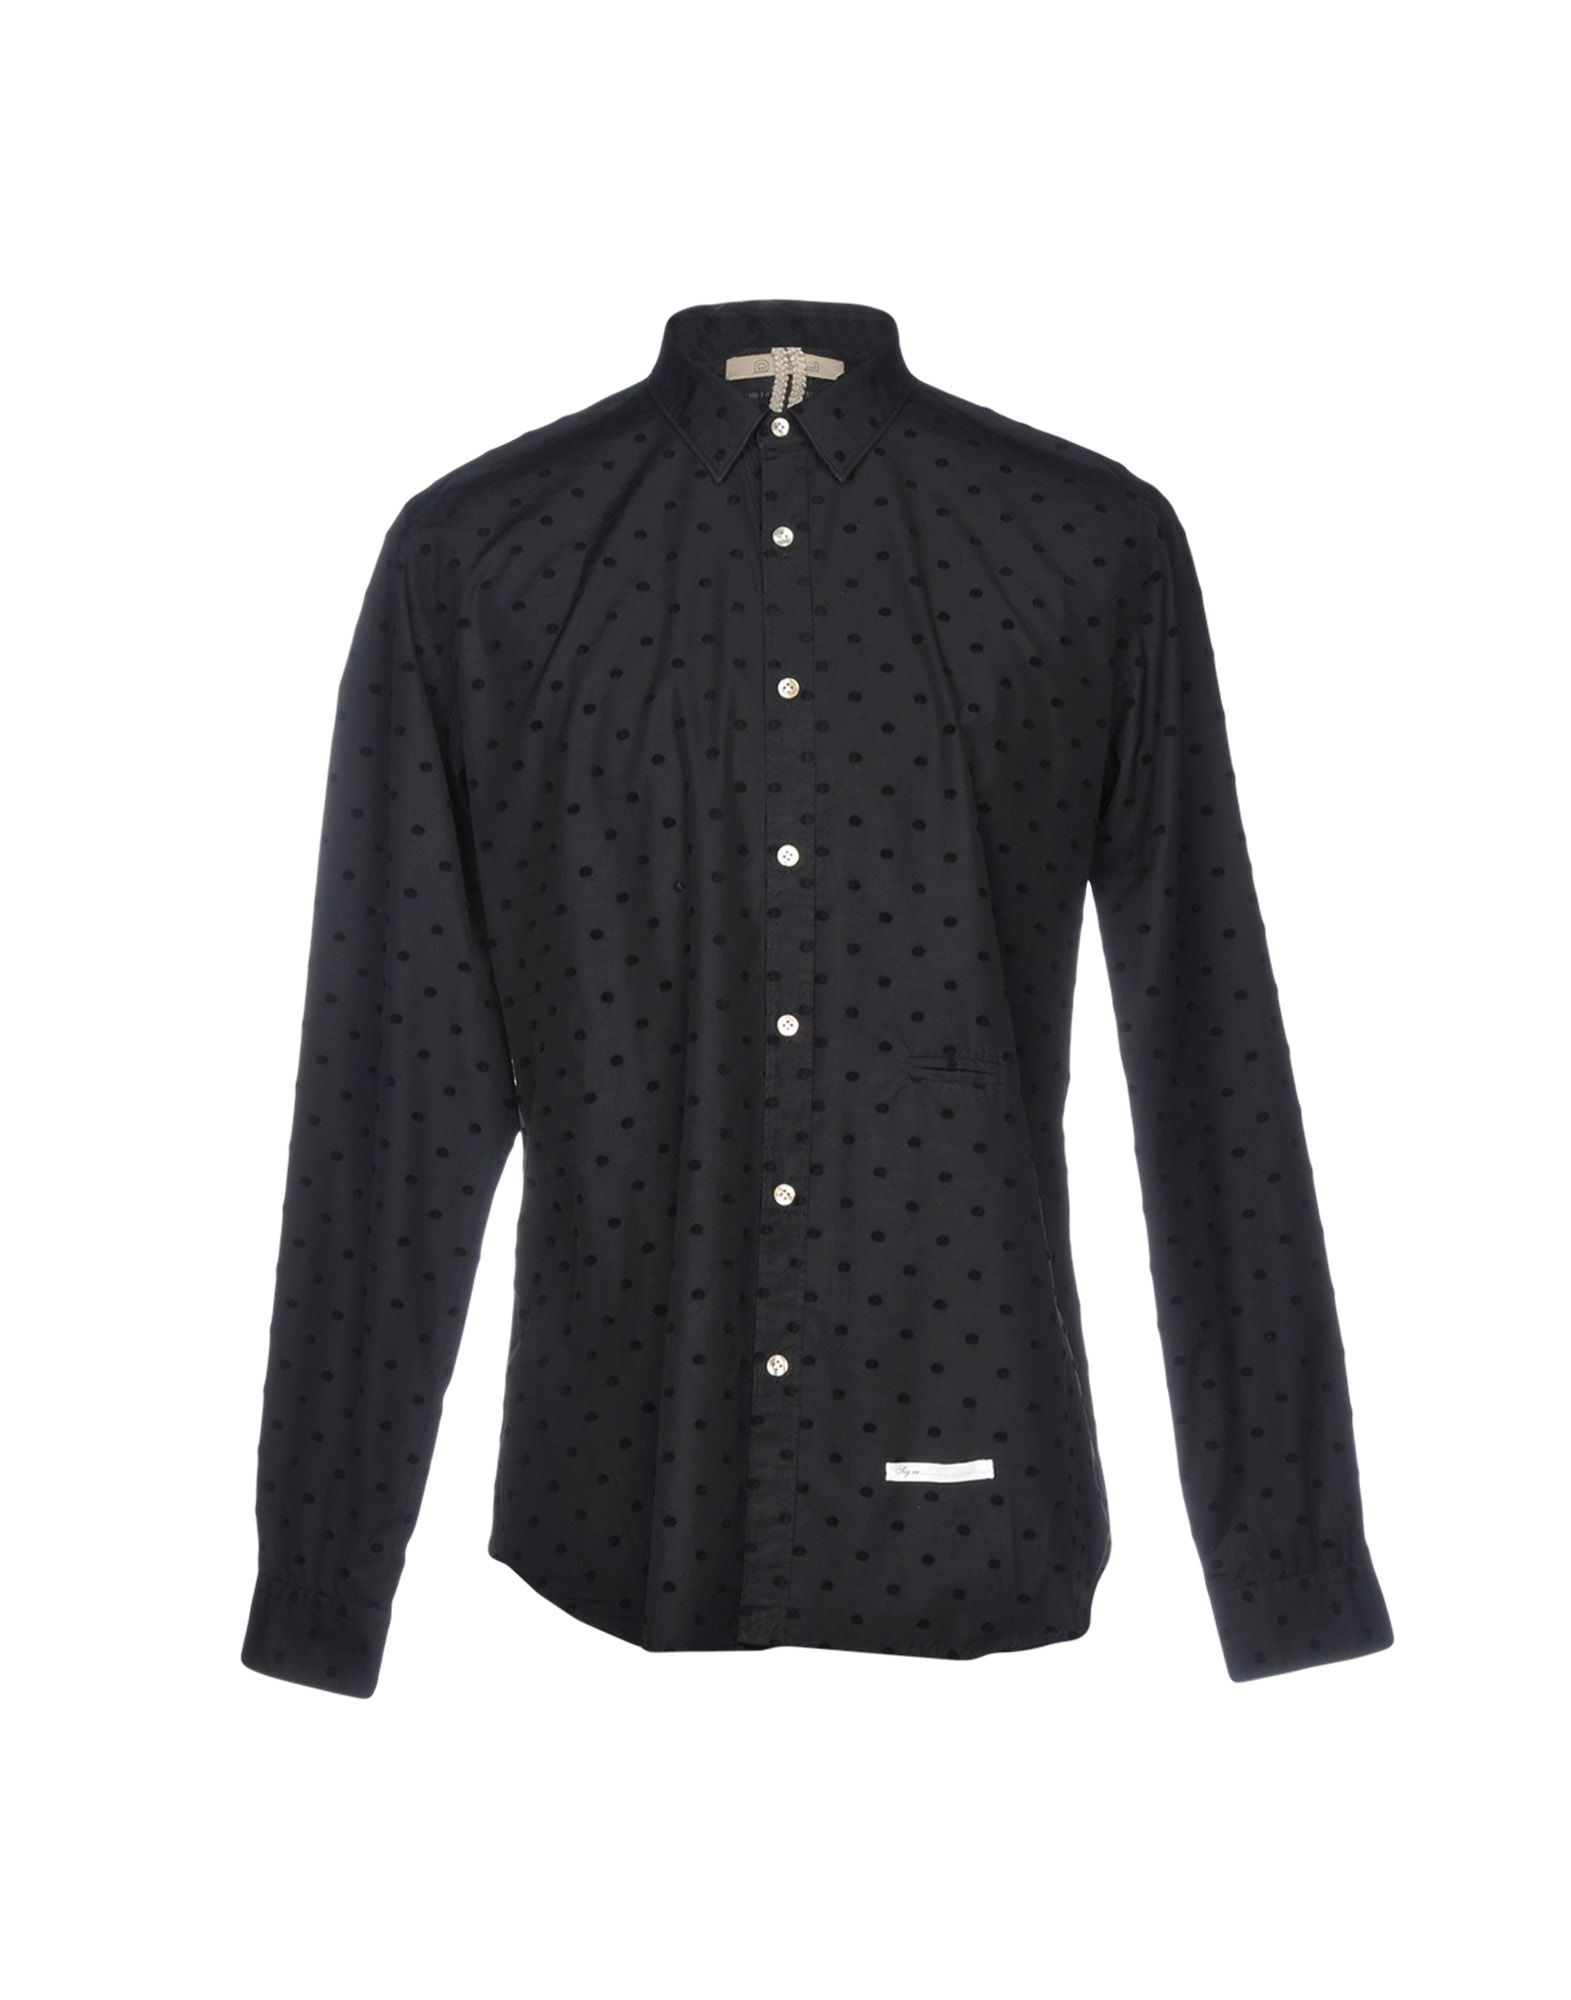 DNL Solid Color Shirt in Black